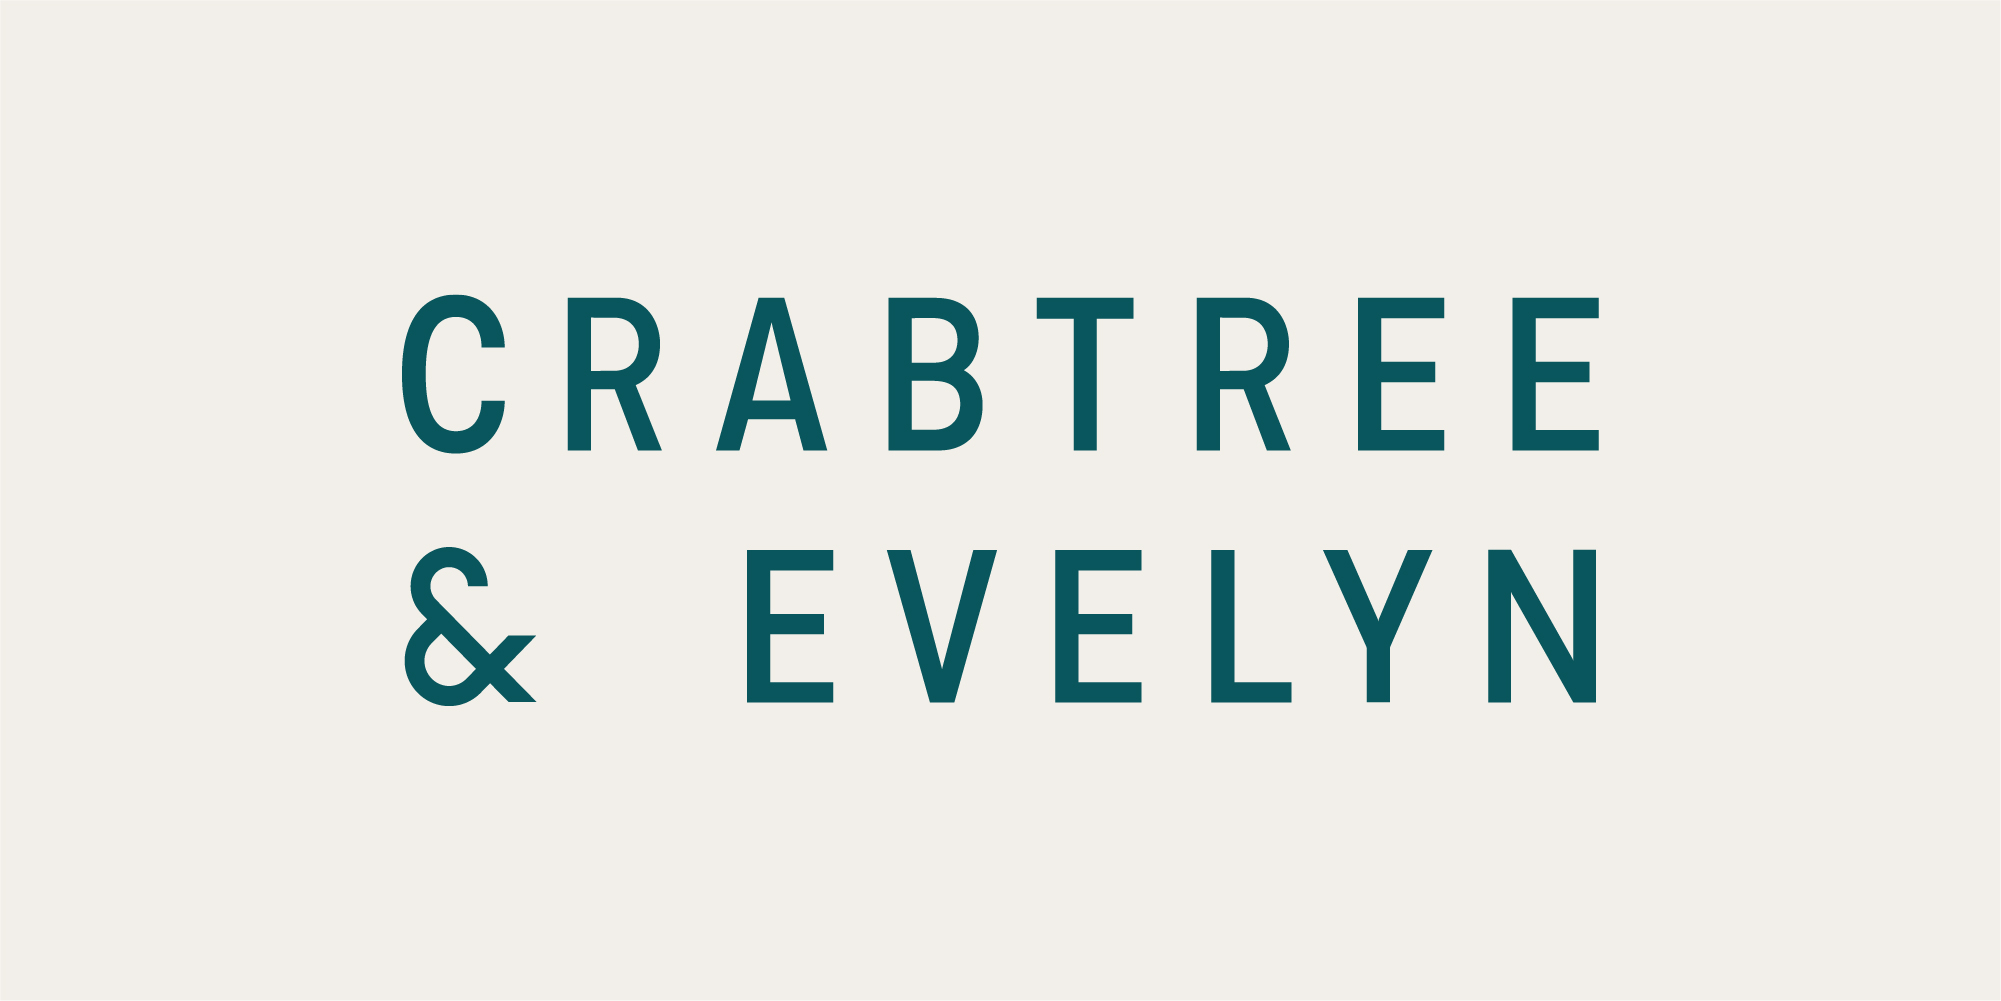 Free Standard Delivery for Order Over £50!: Crabtree & Evelyn UK